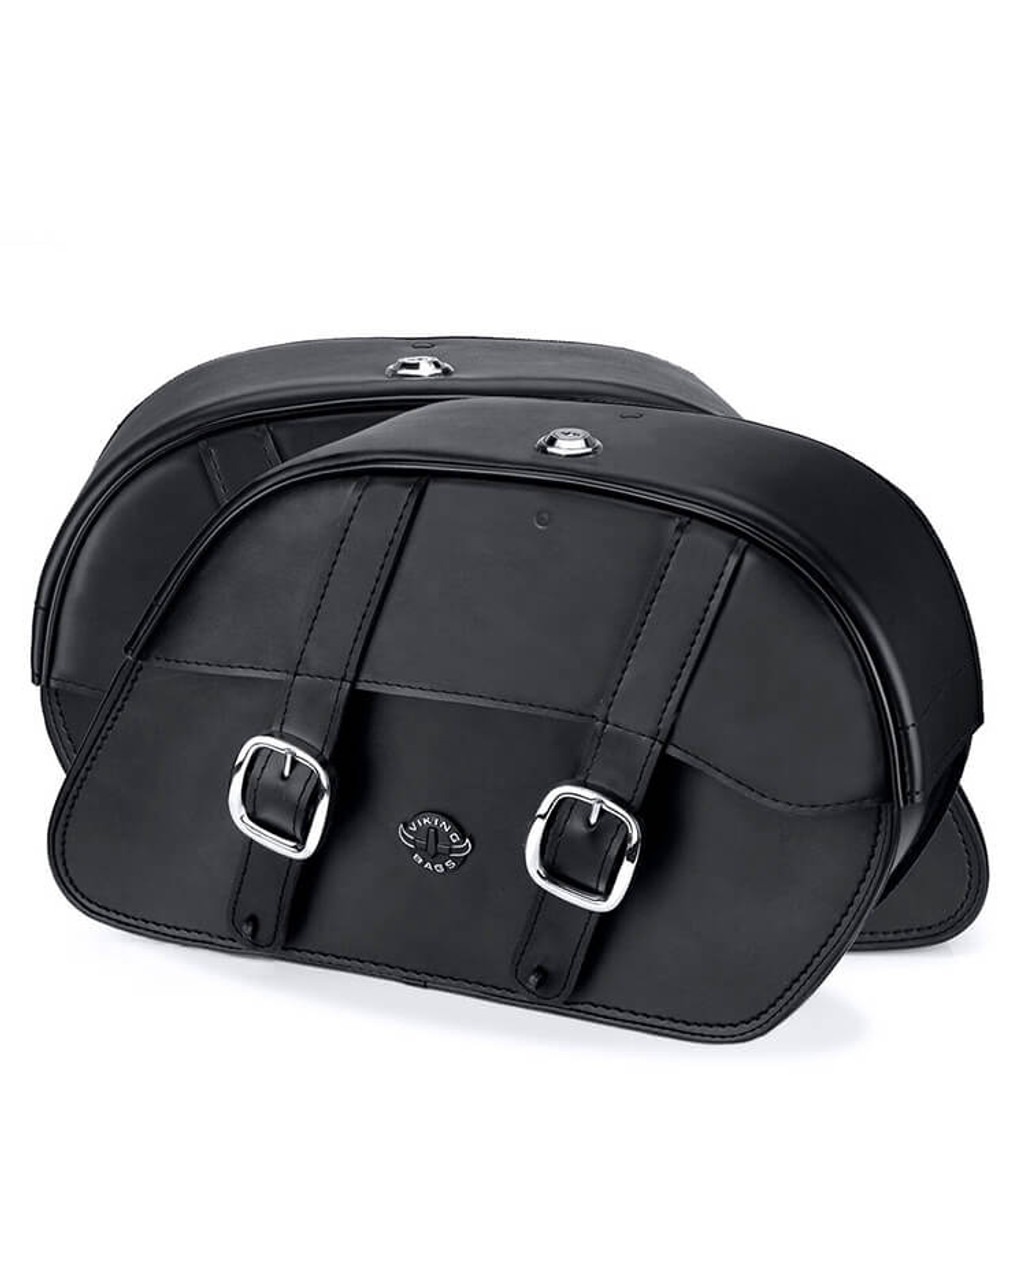 Viking Charger Slanted Medium Motorcycle Saddlebags For Harley Dyna Switchback Both Bags View